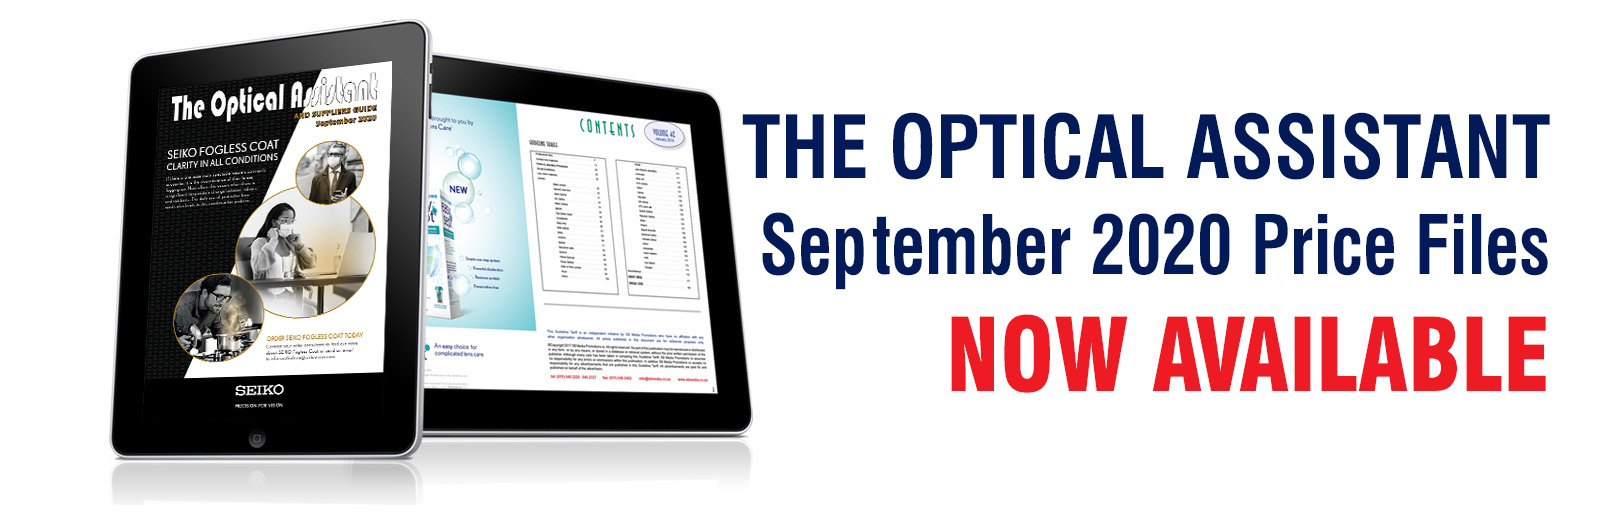 The Optical Assistant, September 2020 Price Files